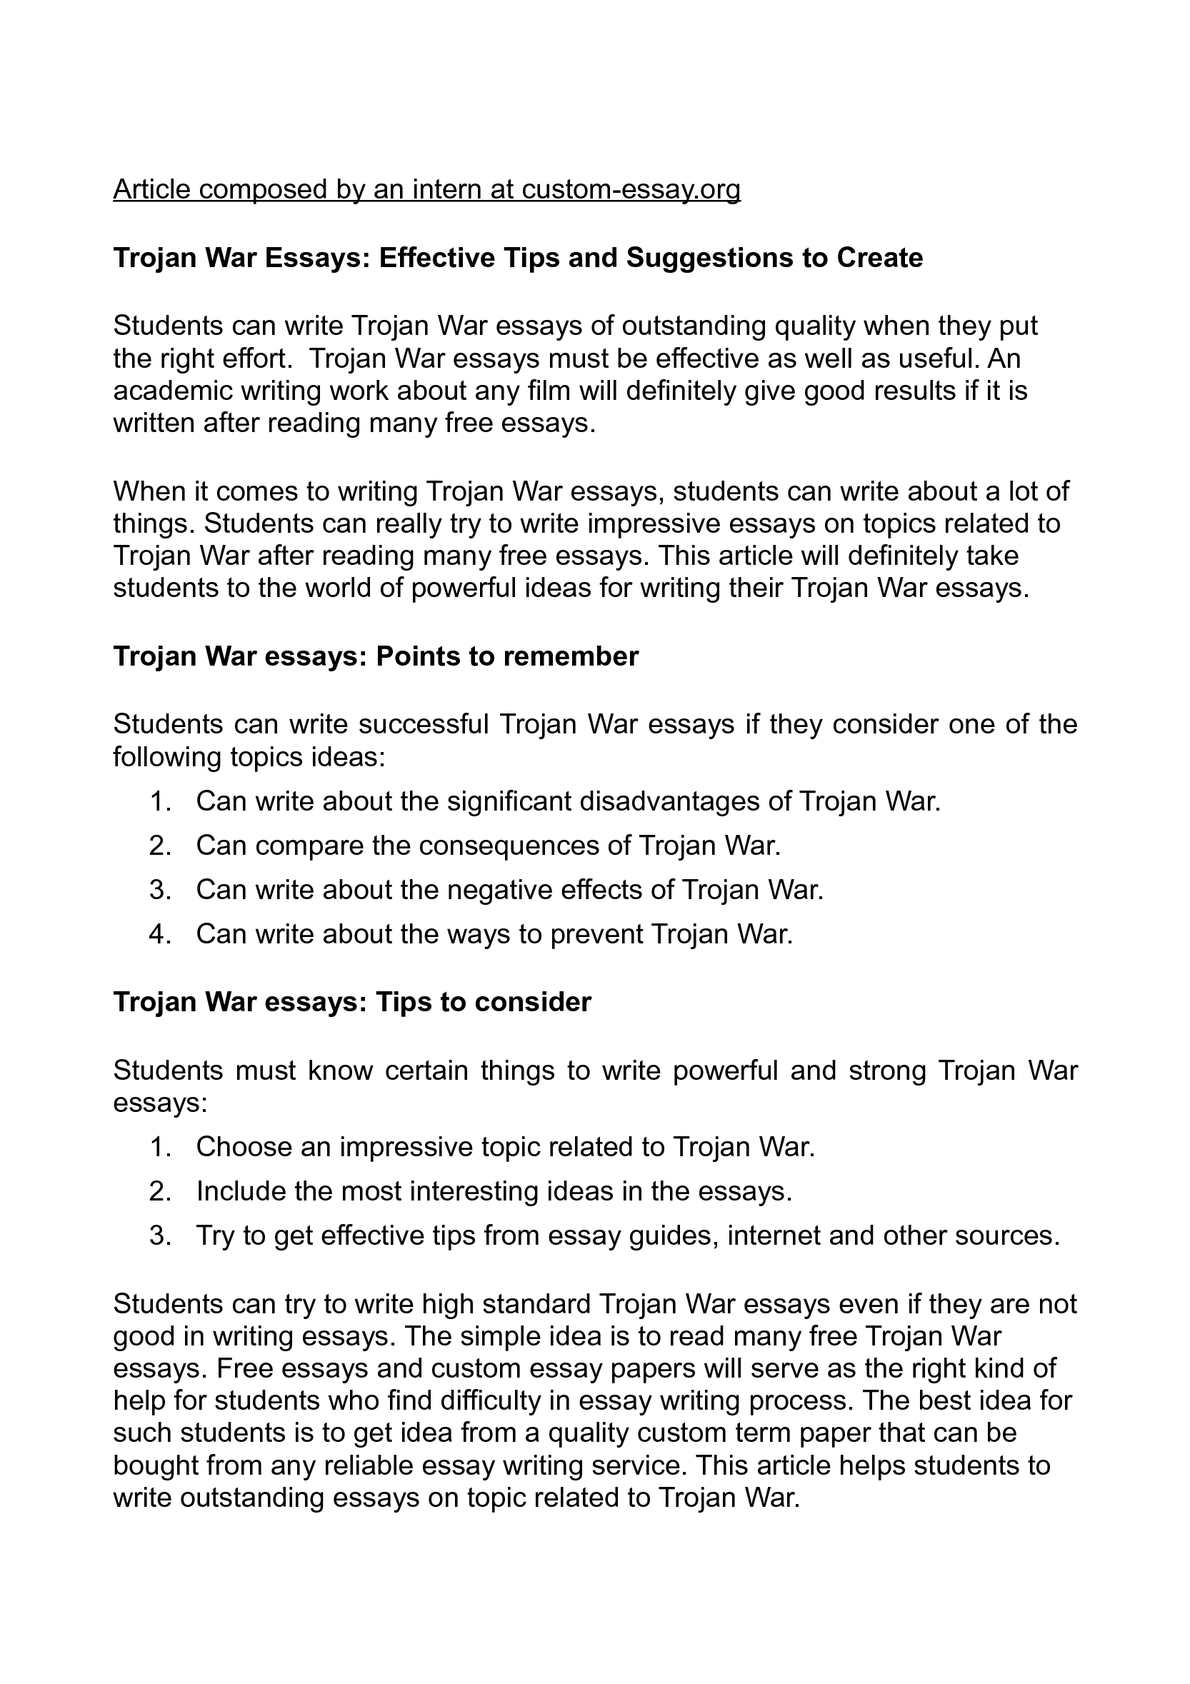 Calamo  Trojan War Essays Effective Tips And Suggestions To Create  How To Write A Proposal For An Essay also Who Will Do My Homwor For Cheap  Online Writing Service Review